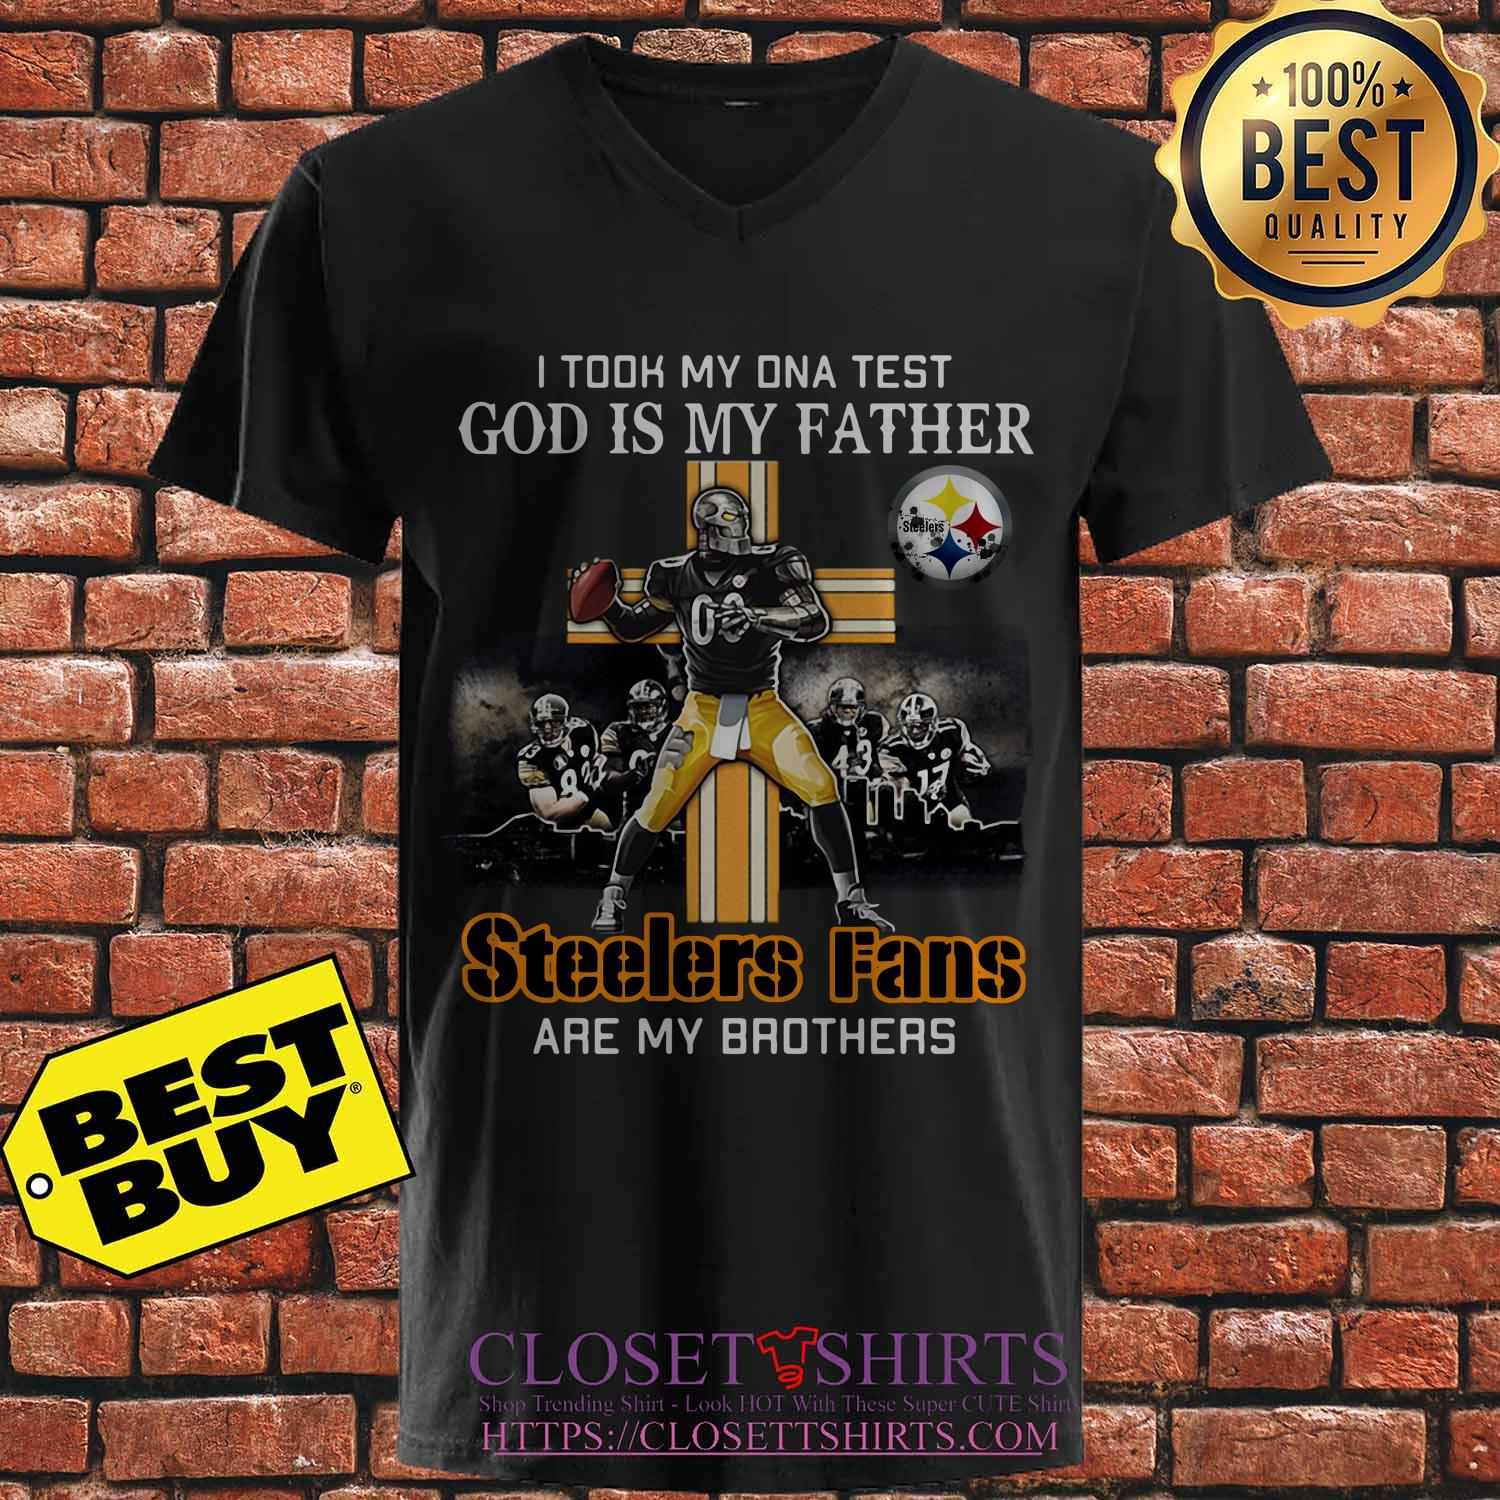 Took Dna Test God Father Pittsburgh Steelers Fans Brothers V Neck